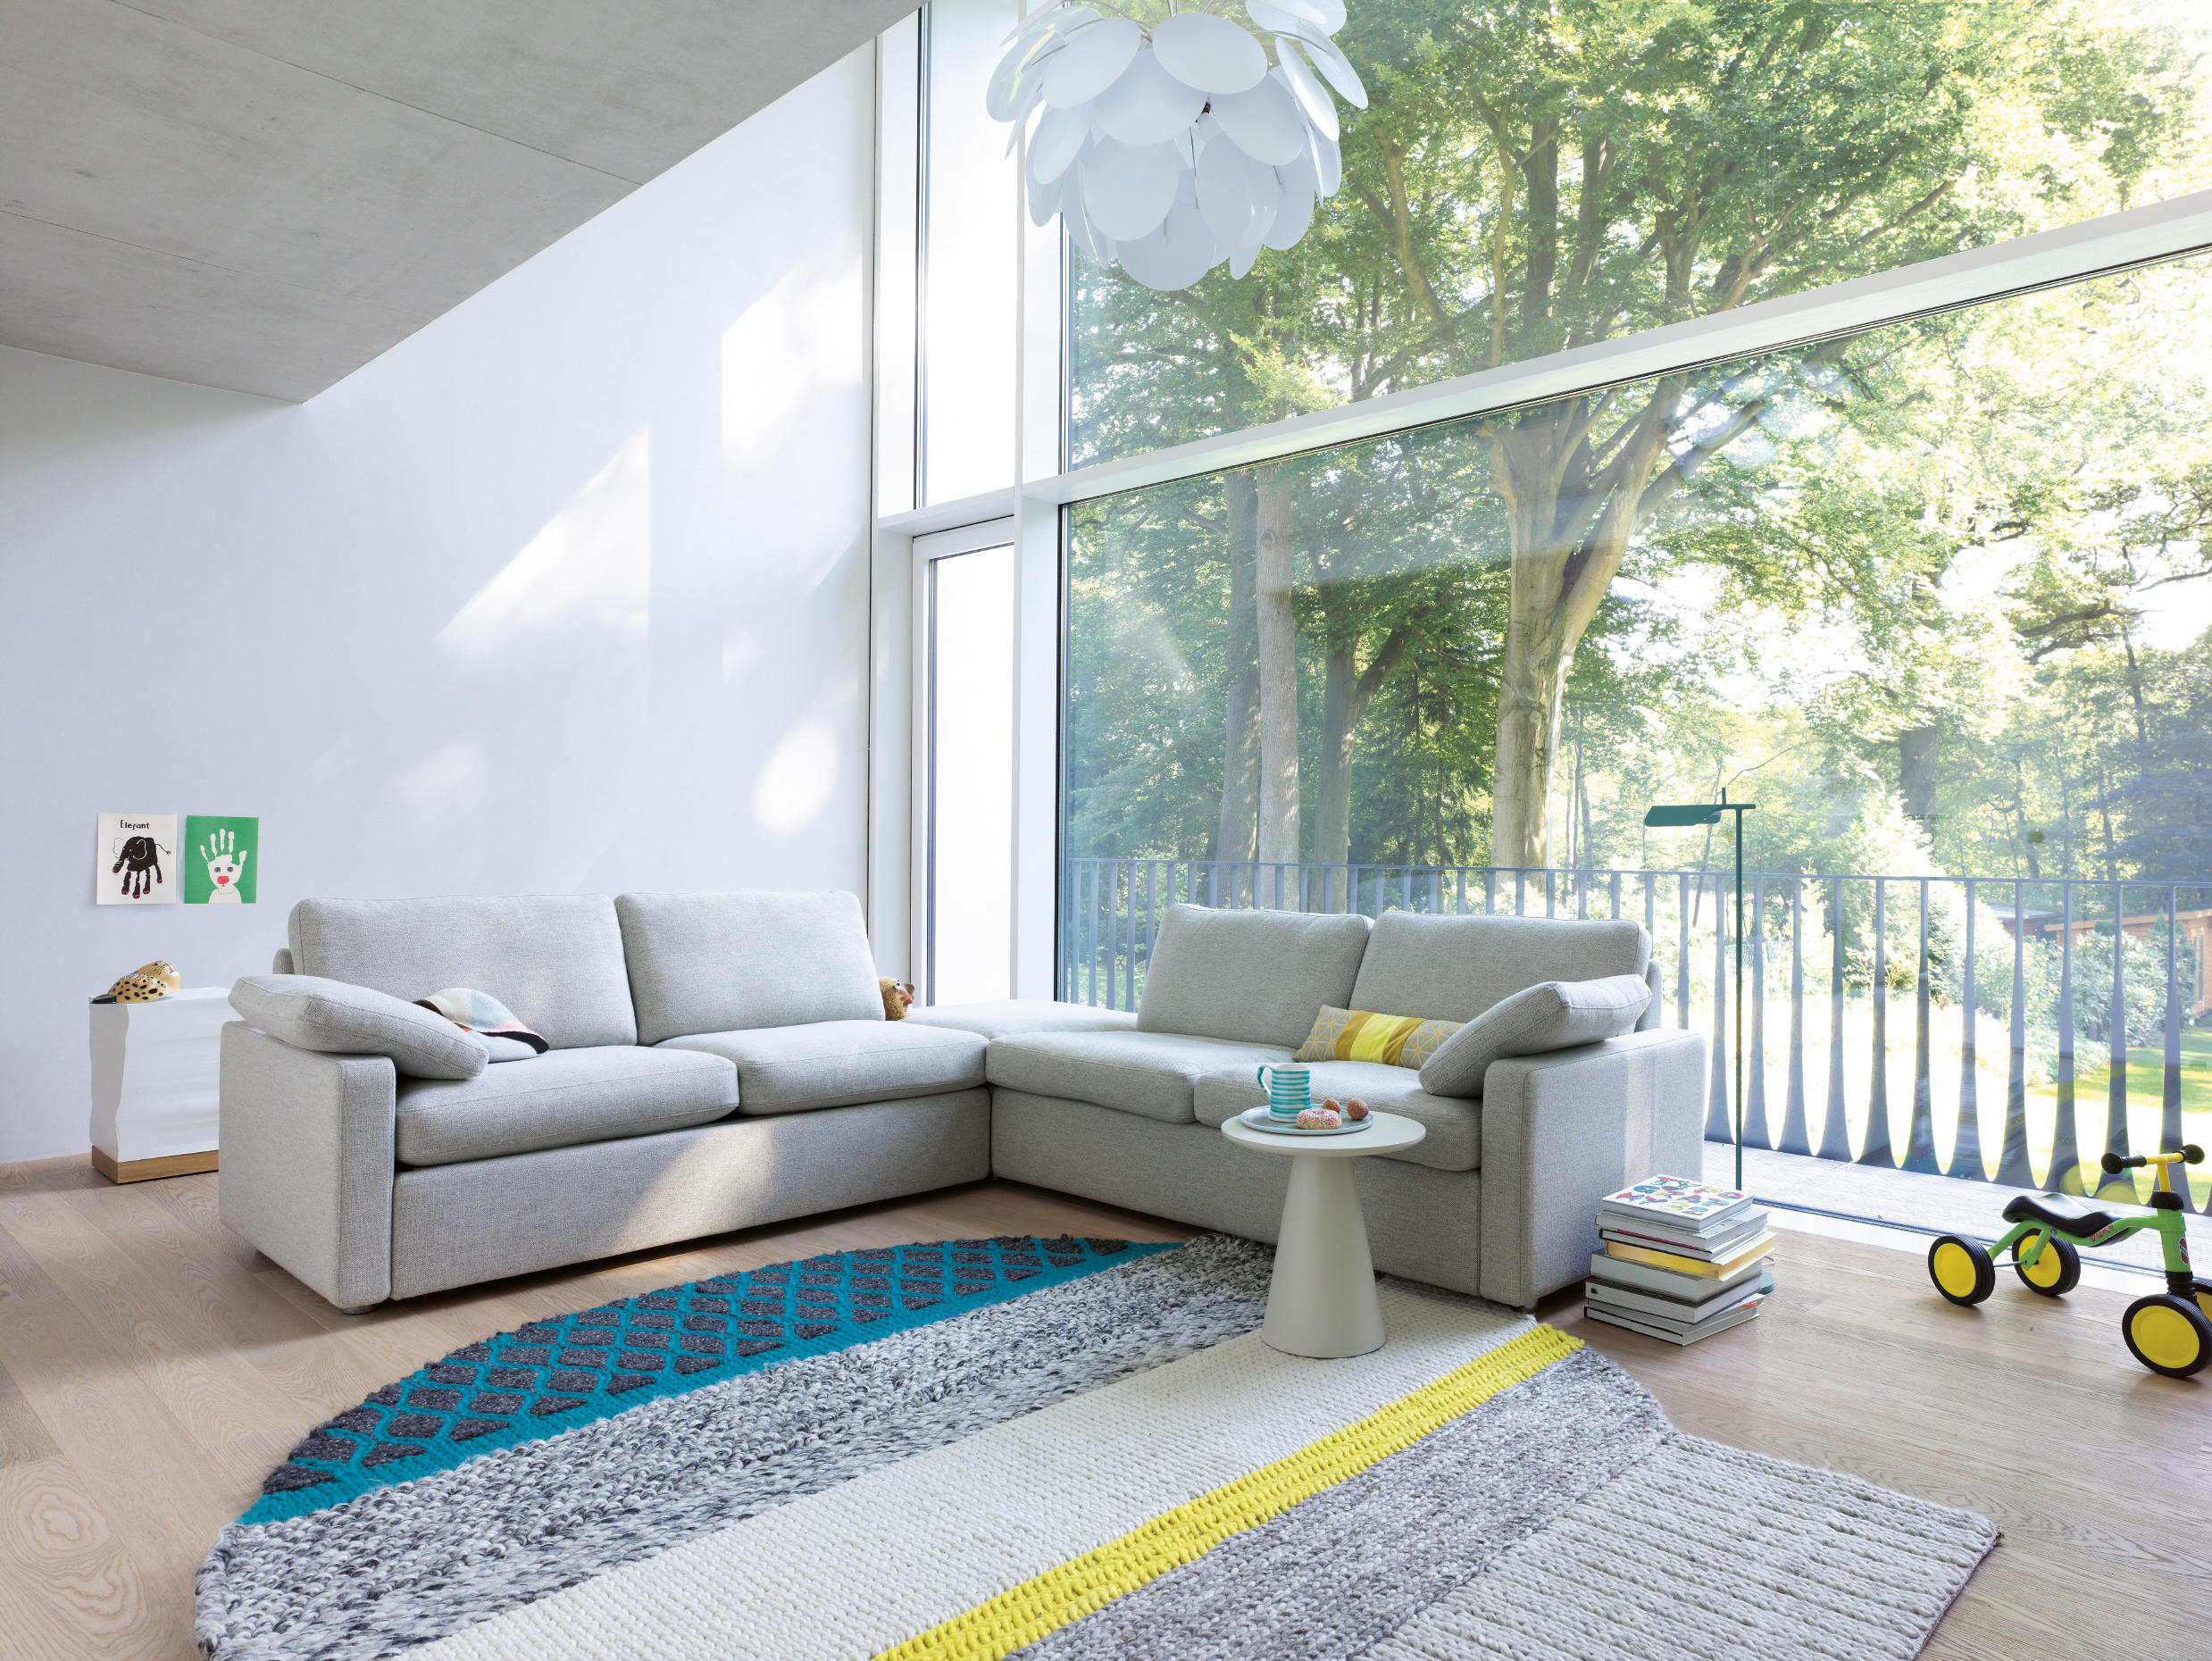 Bettsofa Florida Conseta Sofas From Cor Architonic